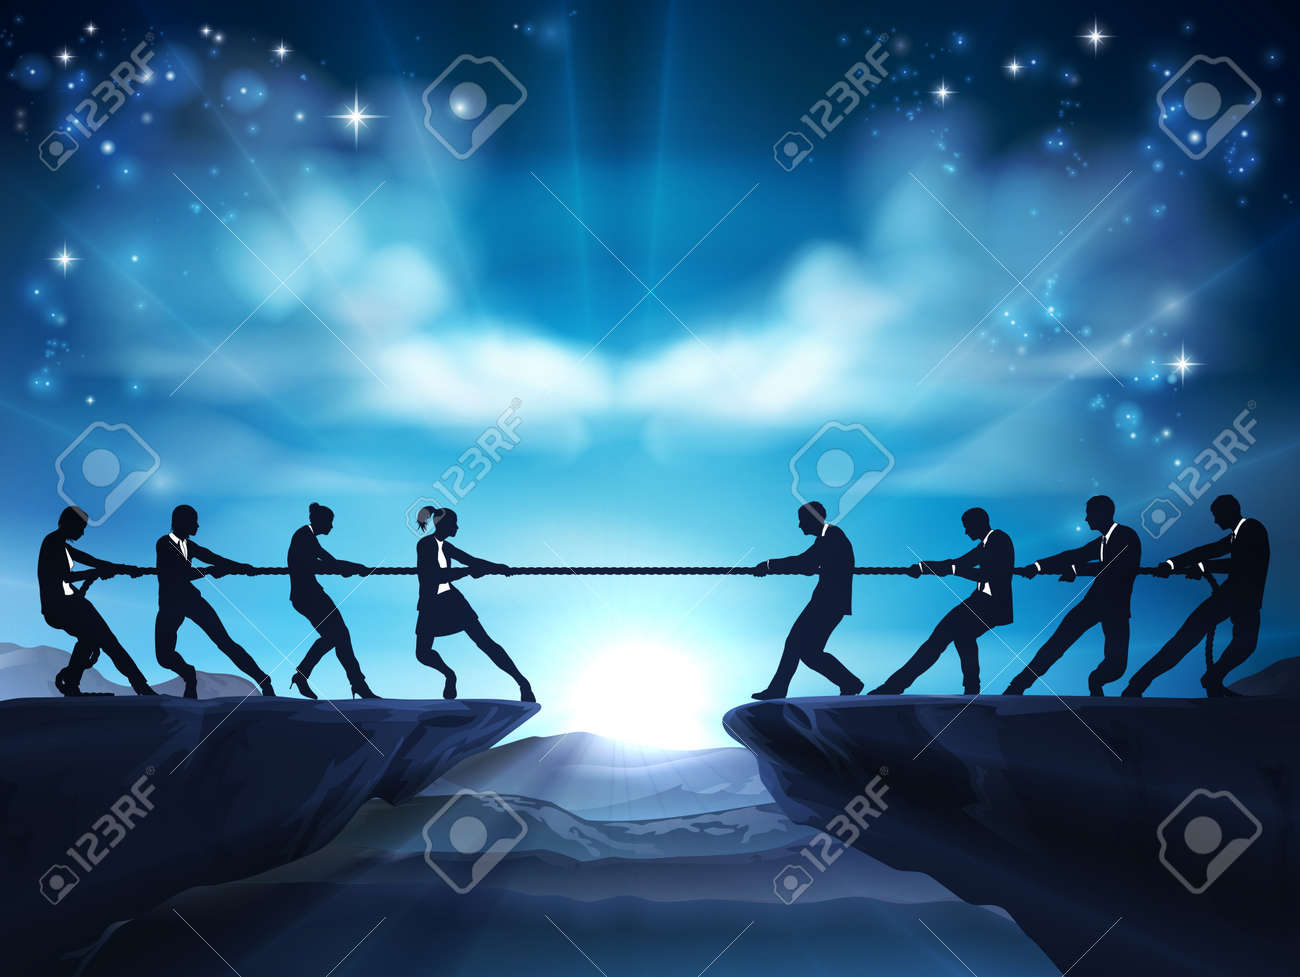 Tug of War Rope Pulling Silhouette Business People - 171956970